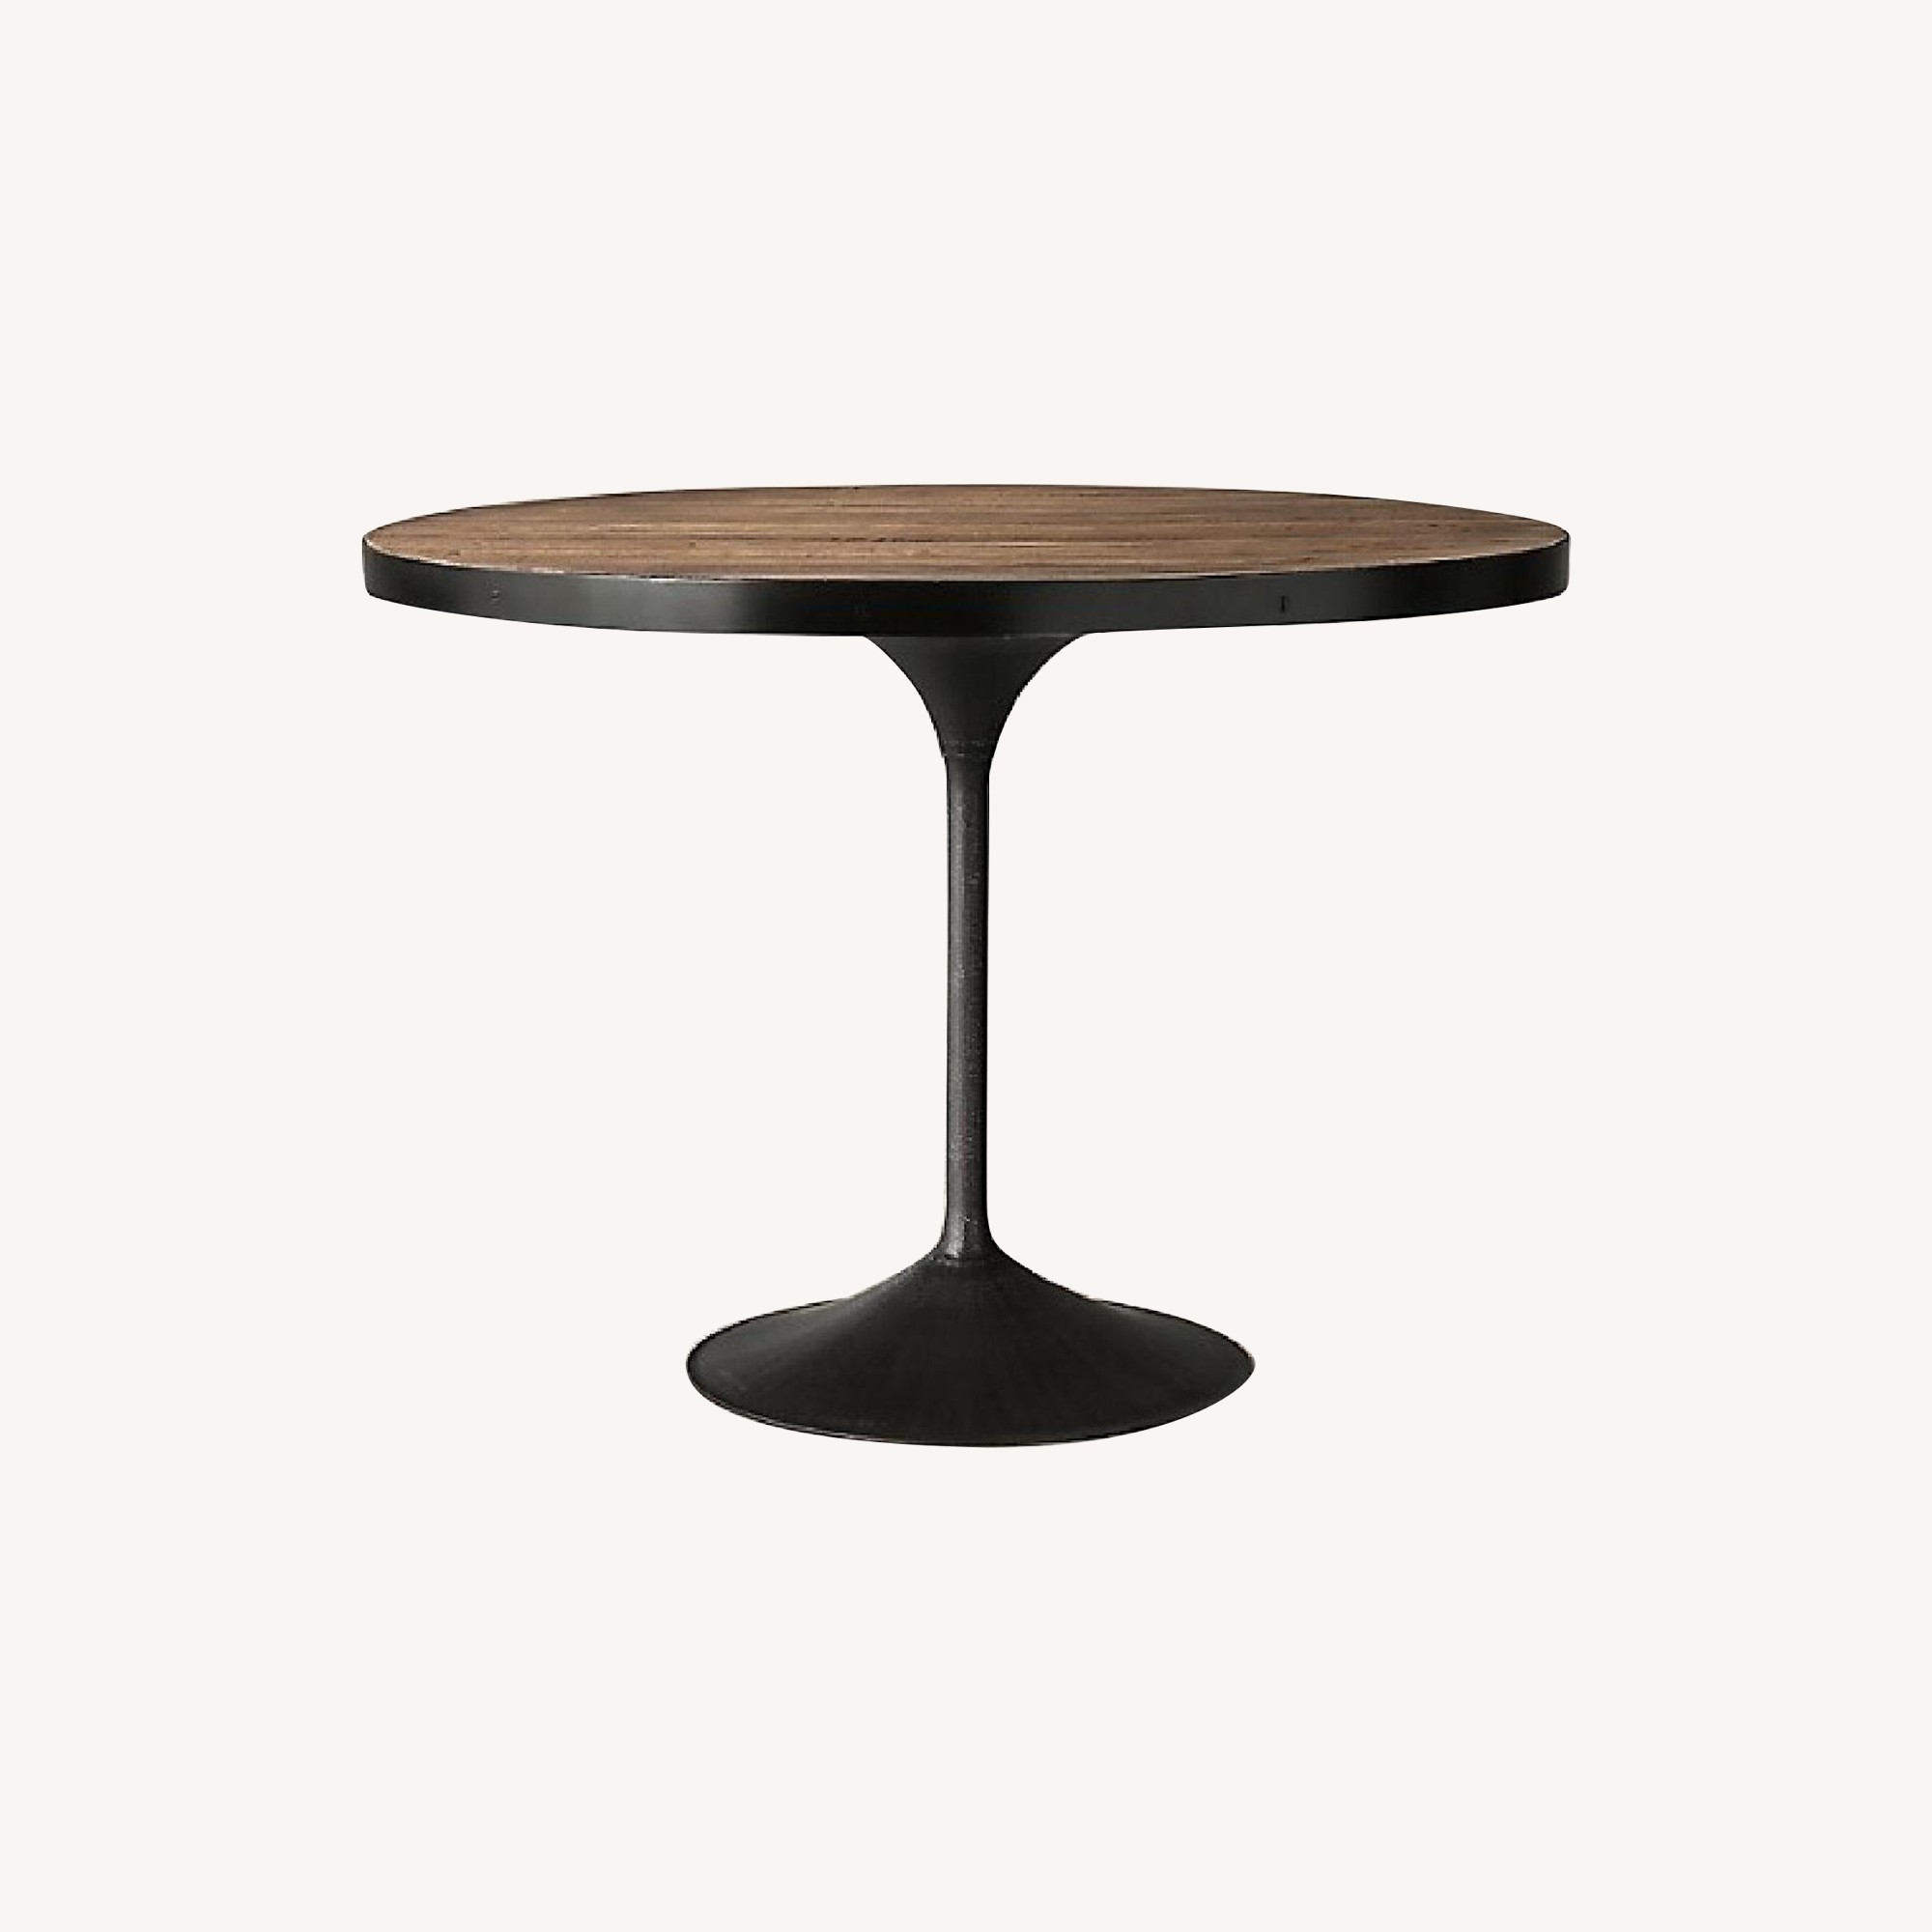 Restoration Hardware Round Wood Dining Table